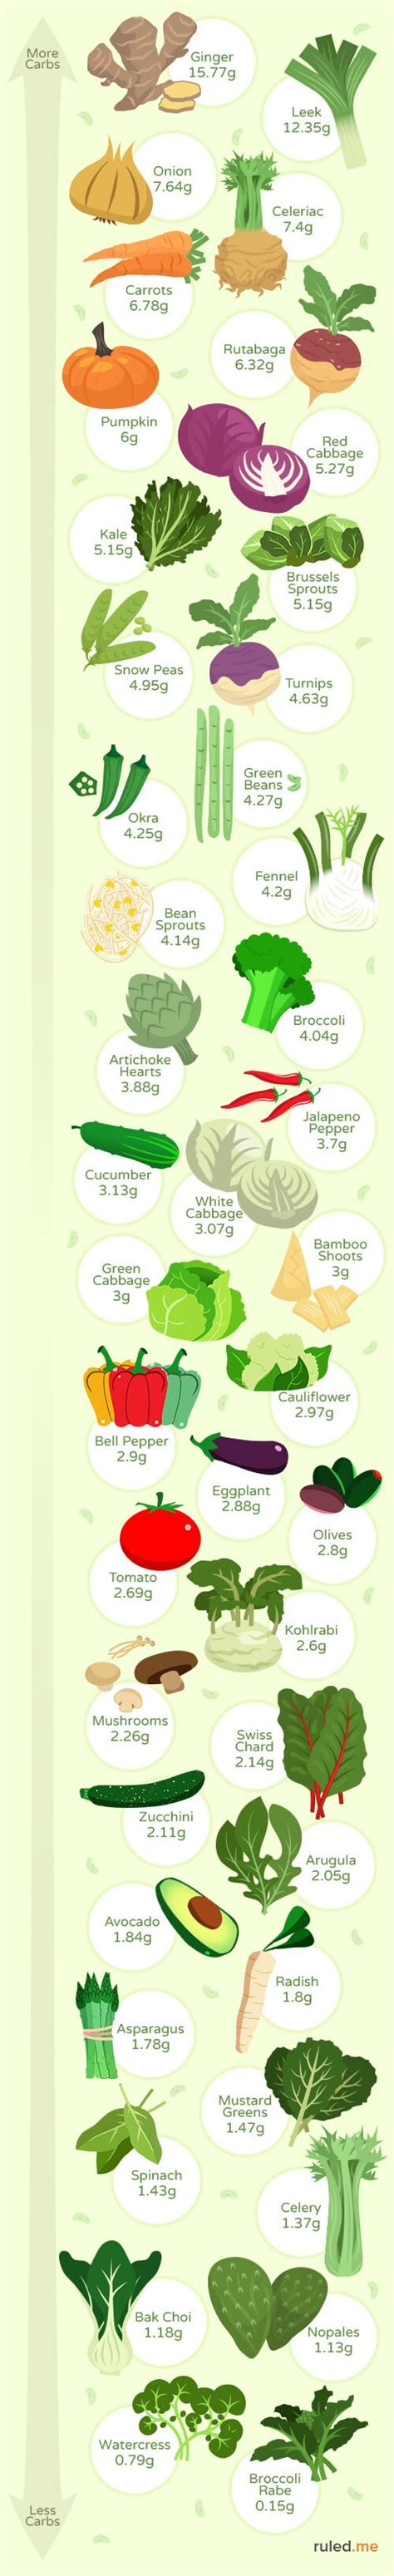 vegetables keto the best low carb vegetables for keto ruled me